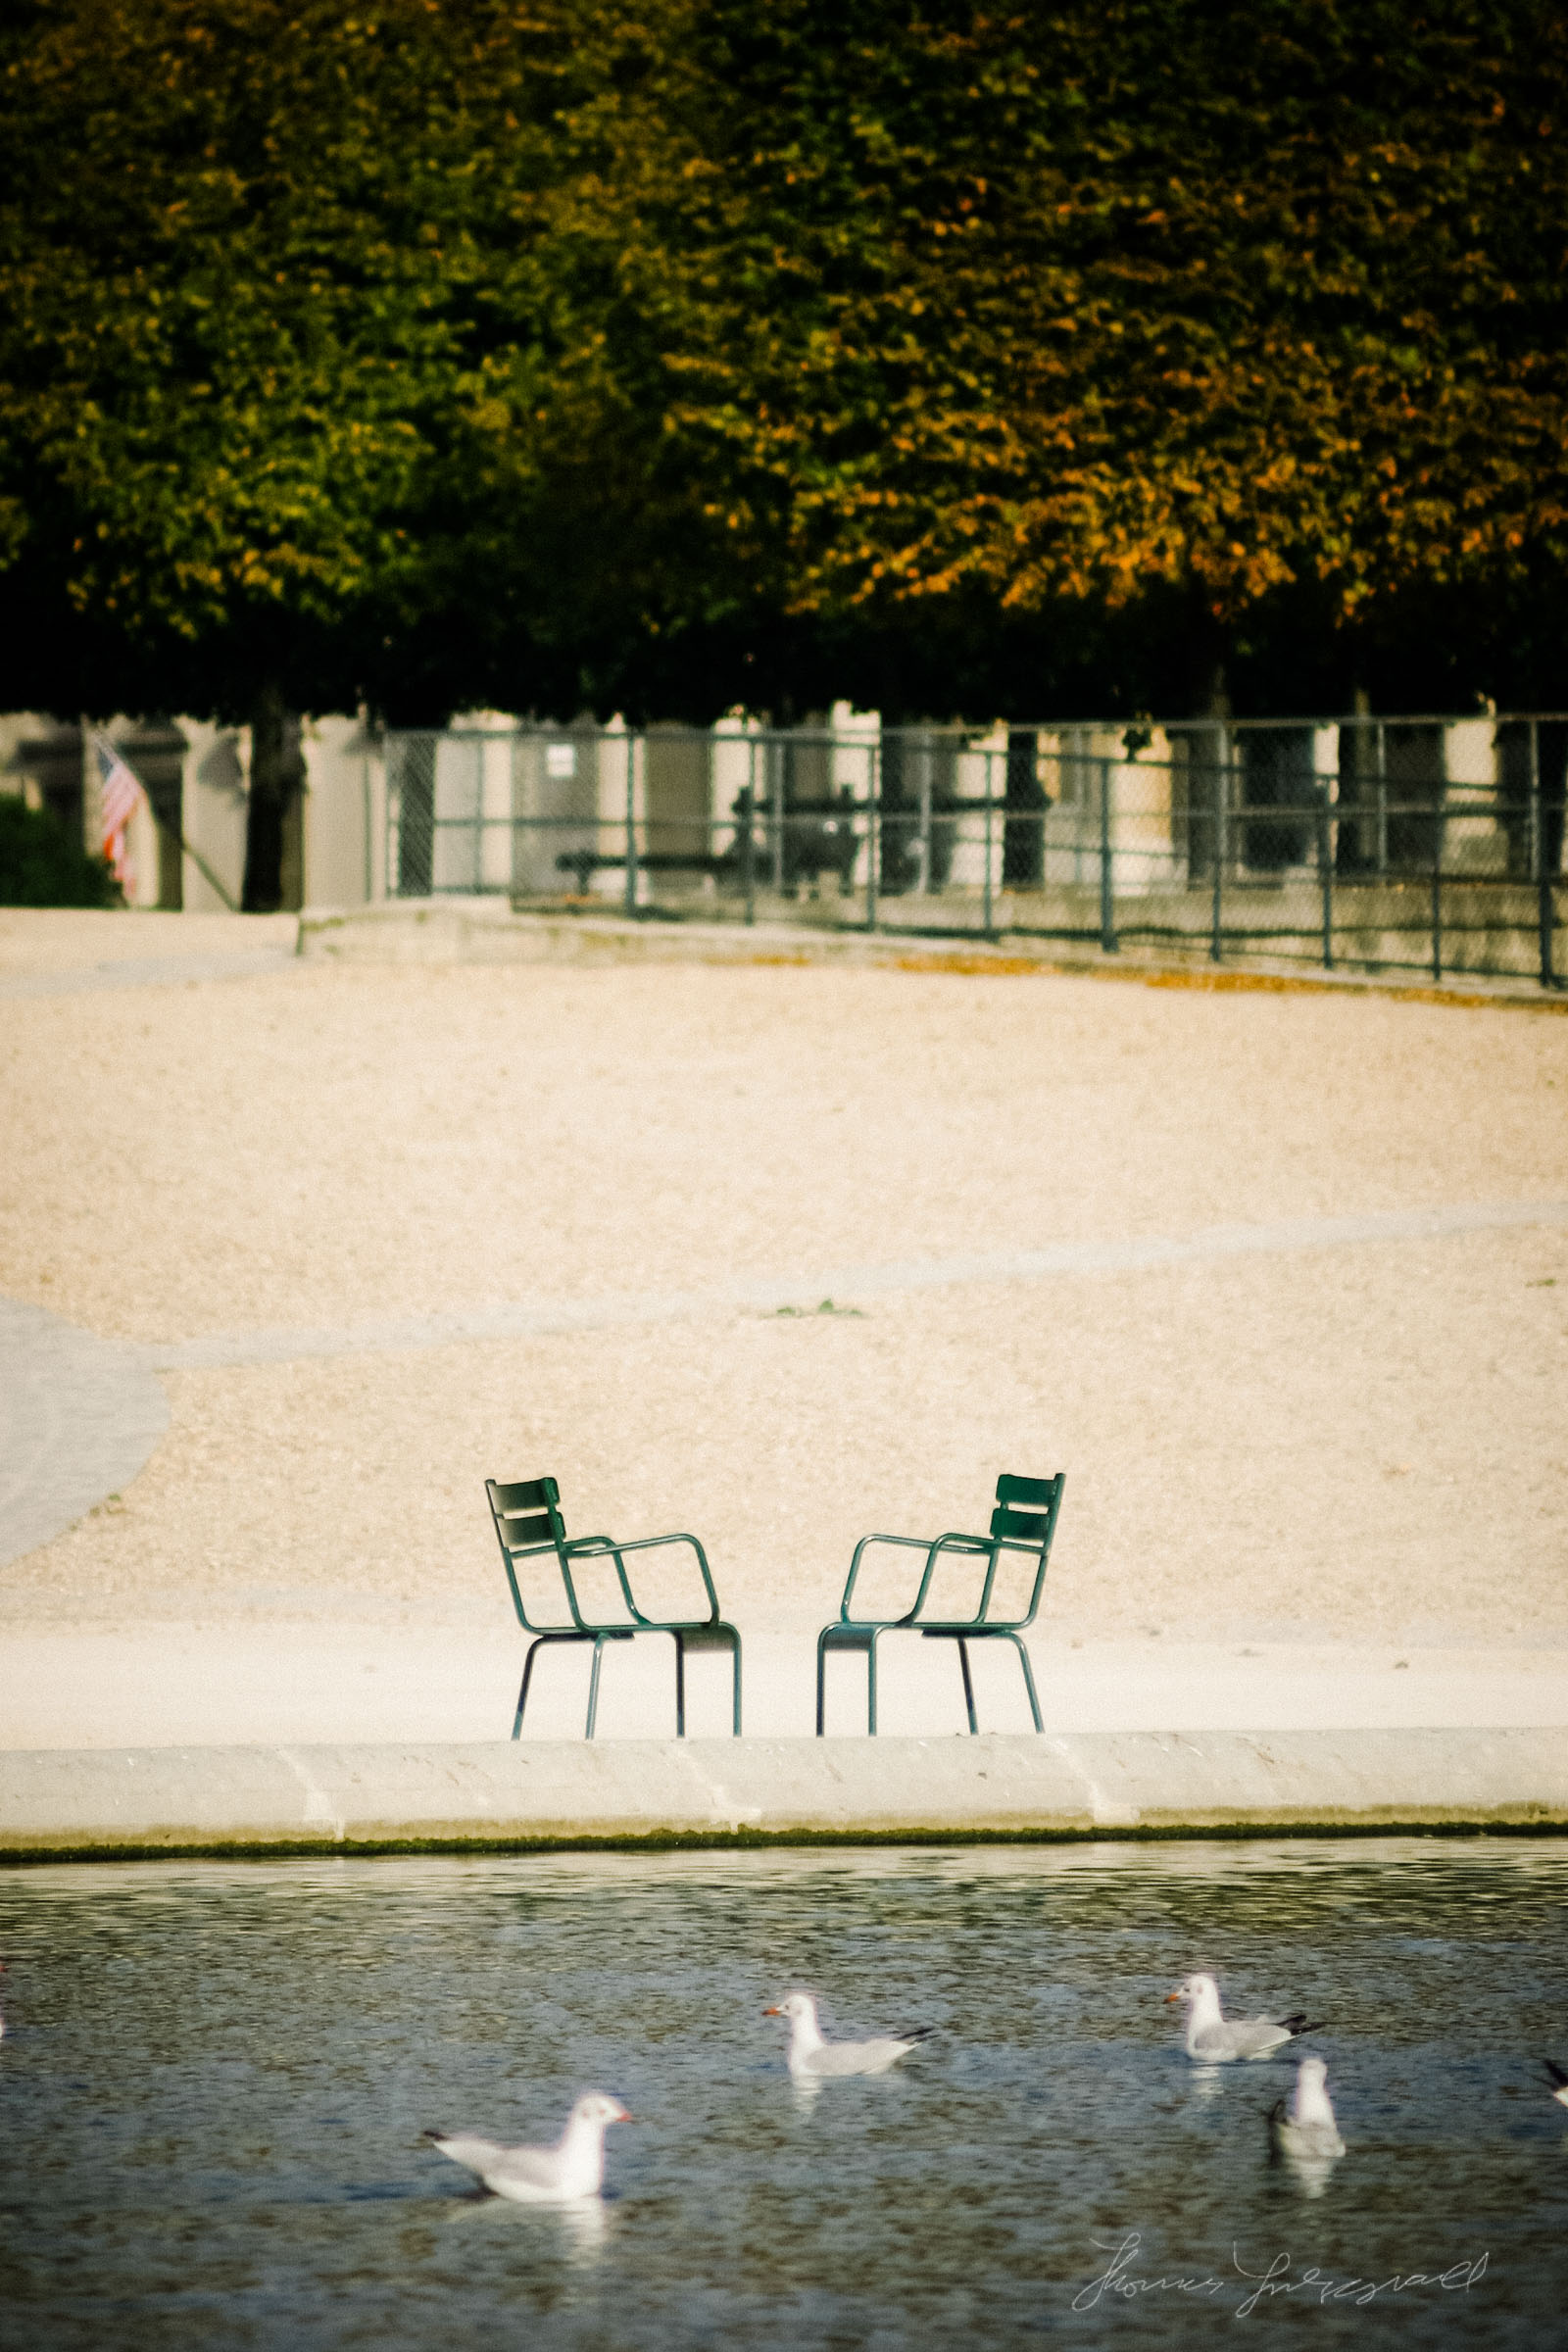 Seats in the Park